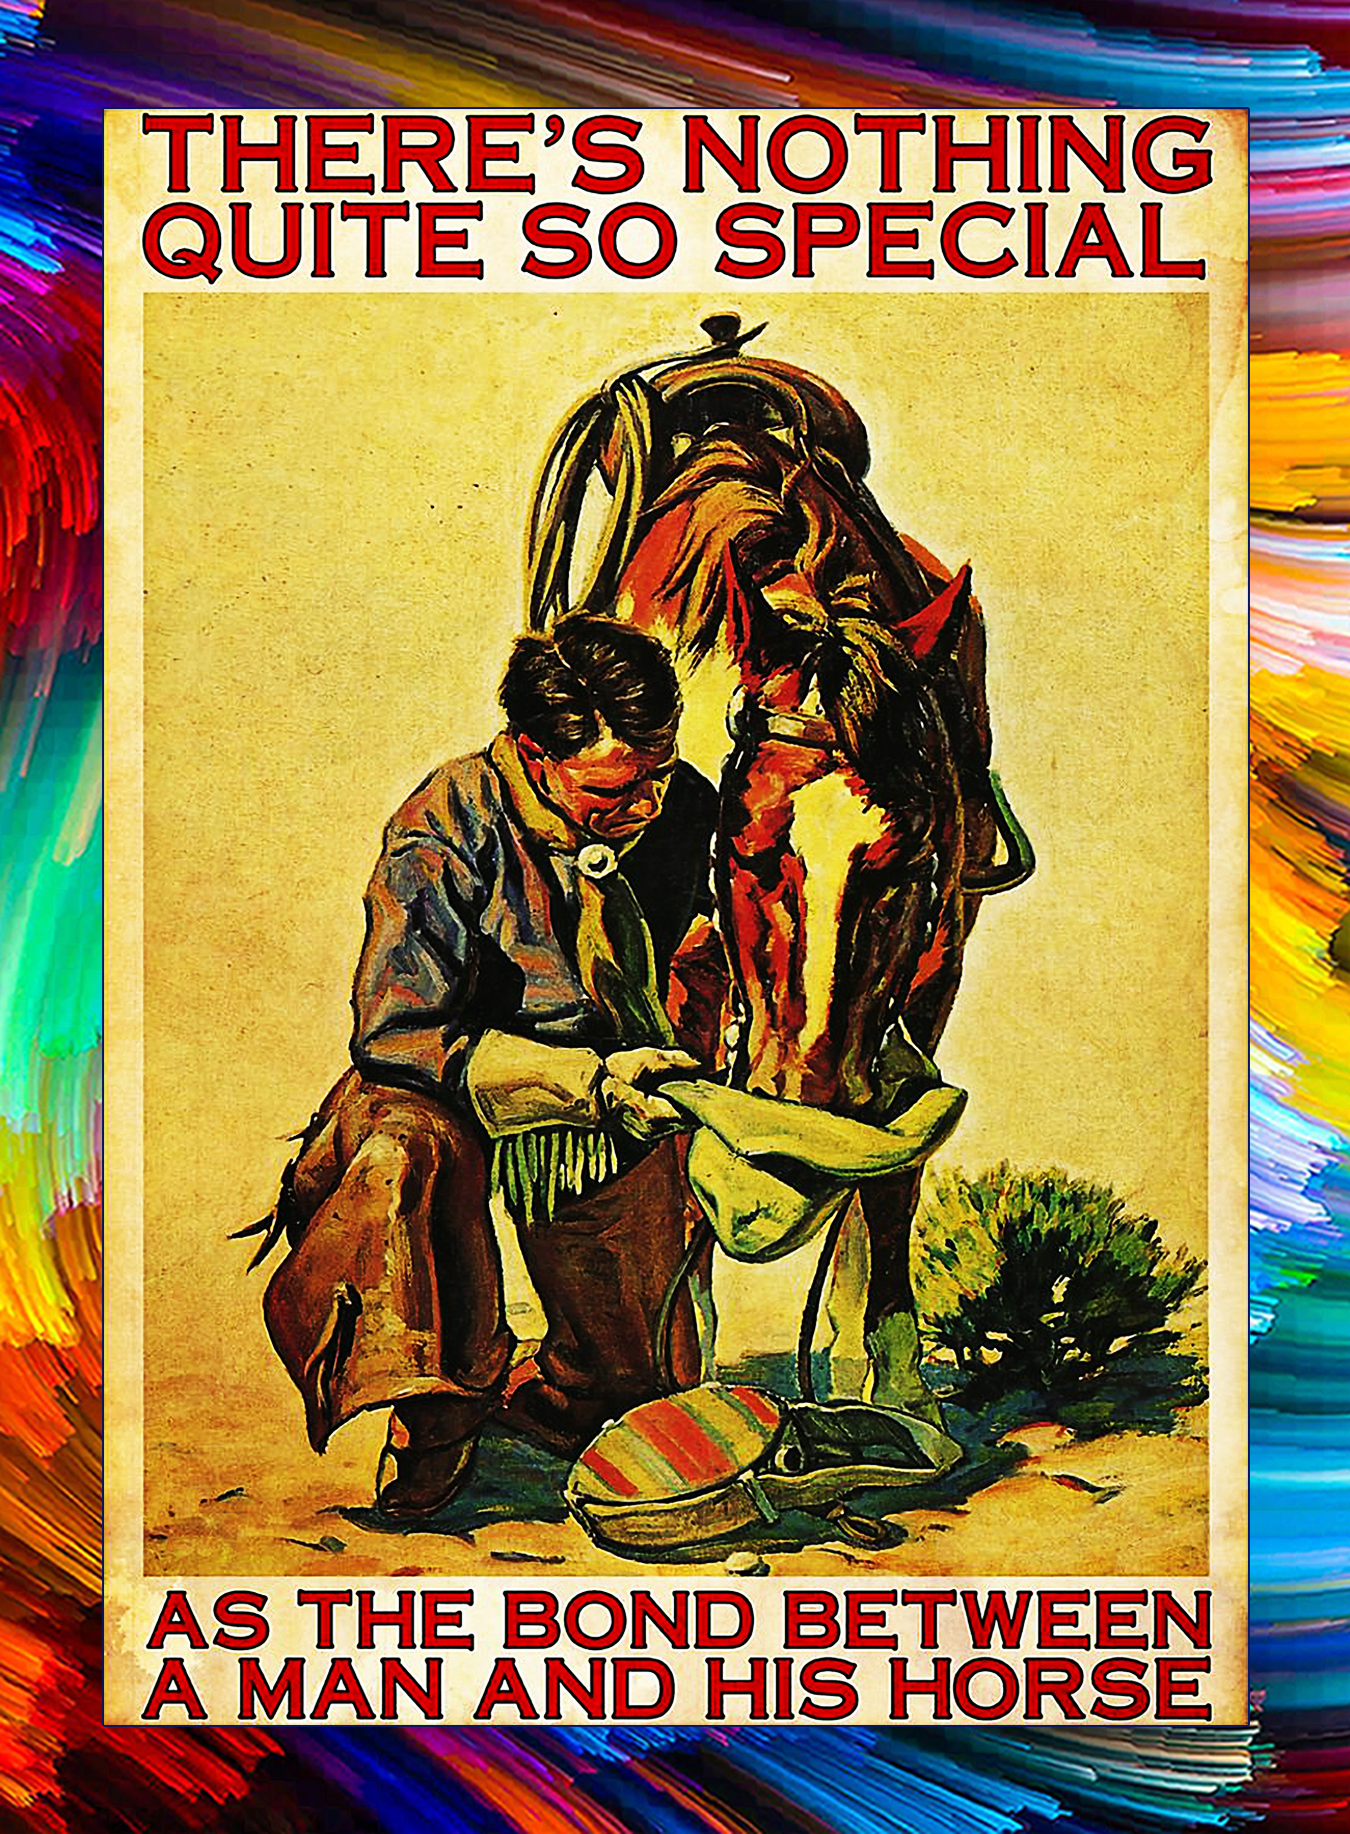 Horse there's nothing quite so special poster - A2